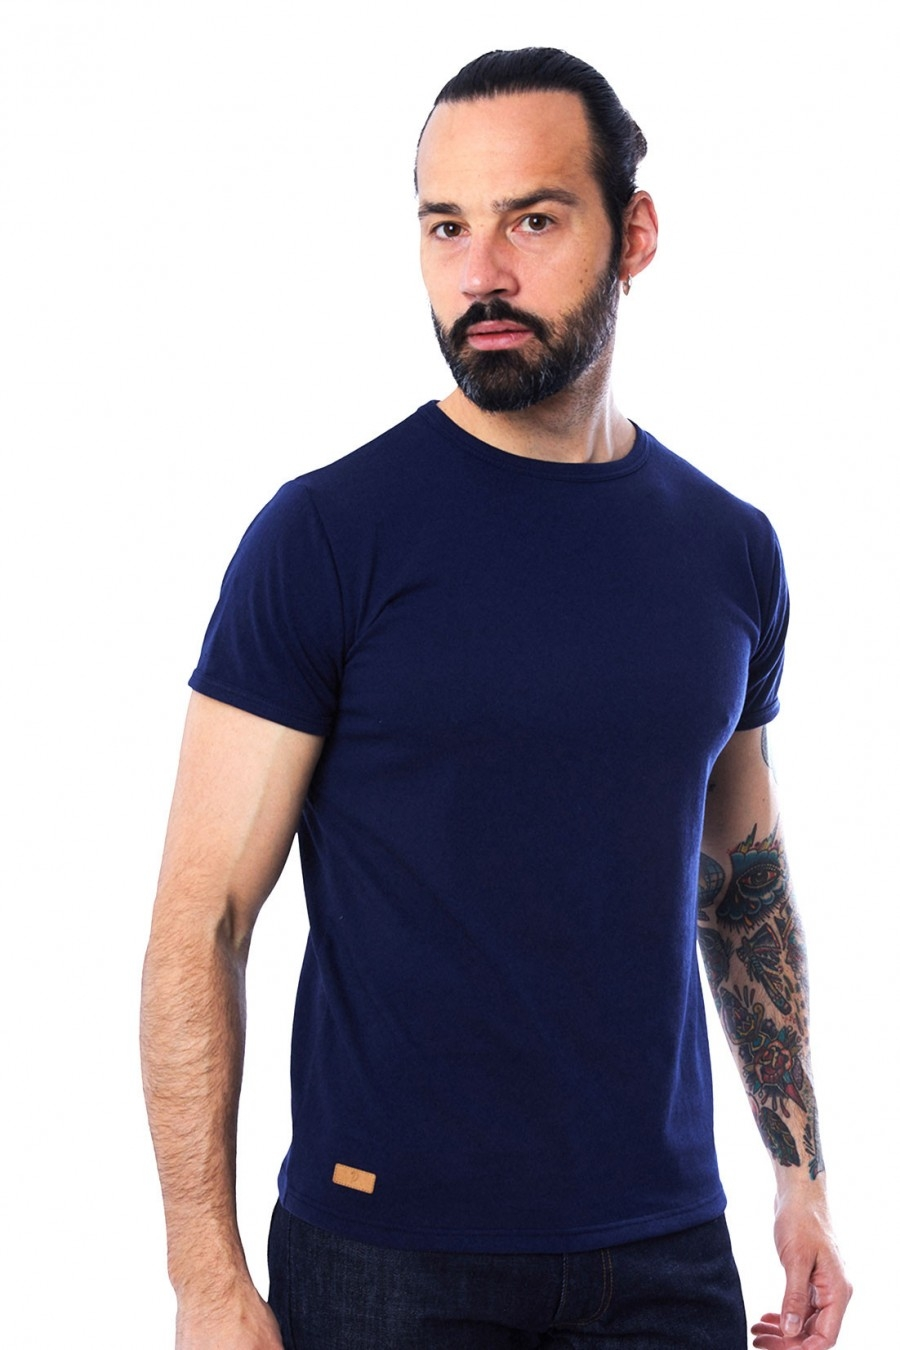 T-SHIRT HOMME MANCHE COURTE COL ROND BLEU ROI - Made in France & 100% Recyclé